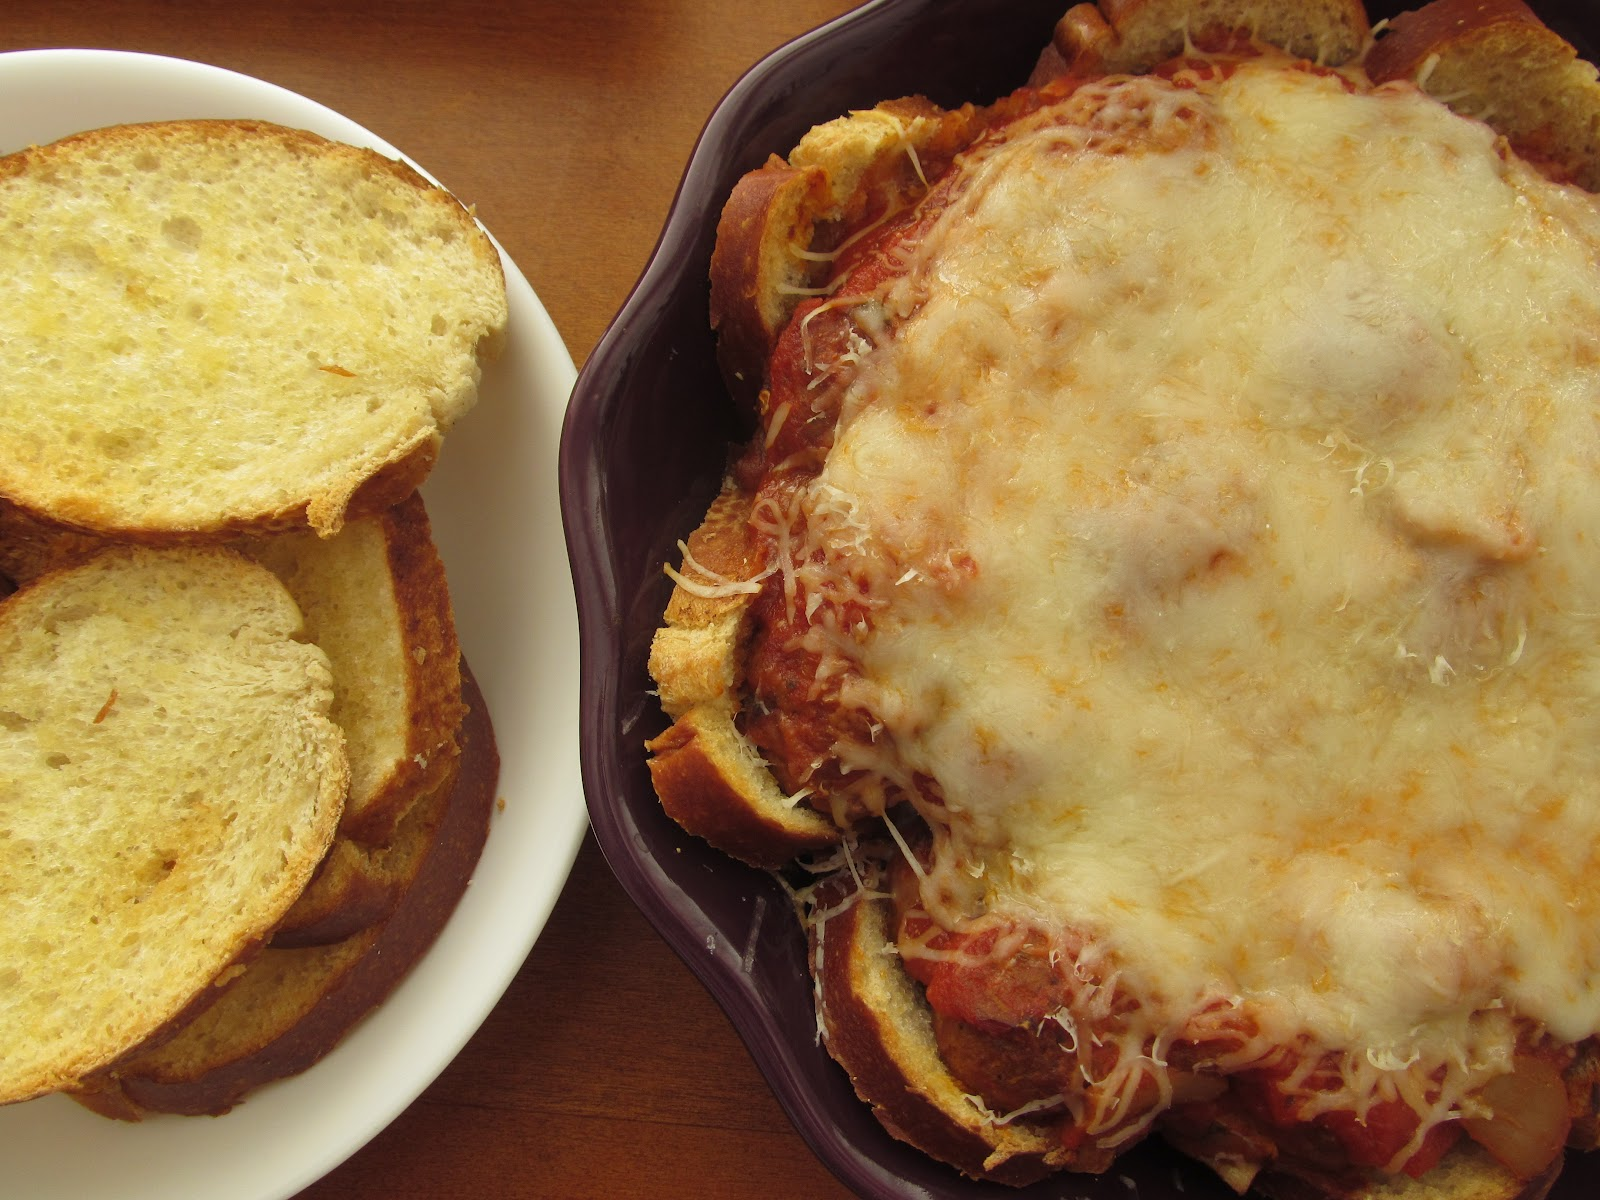 Meatball Casserole With French Bread